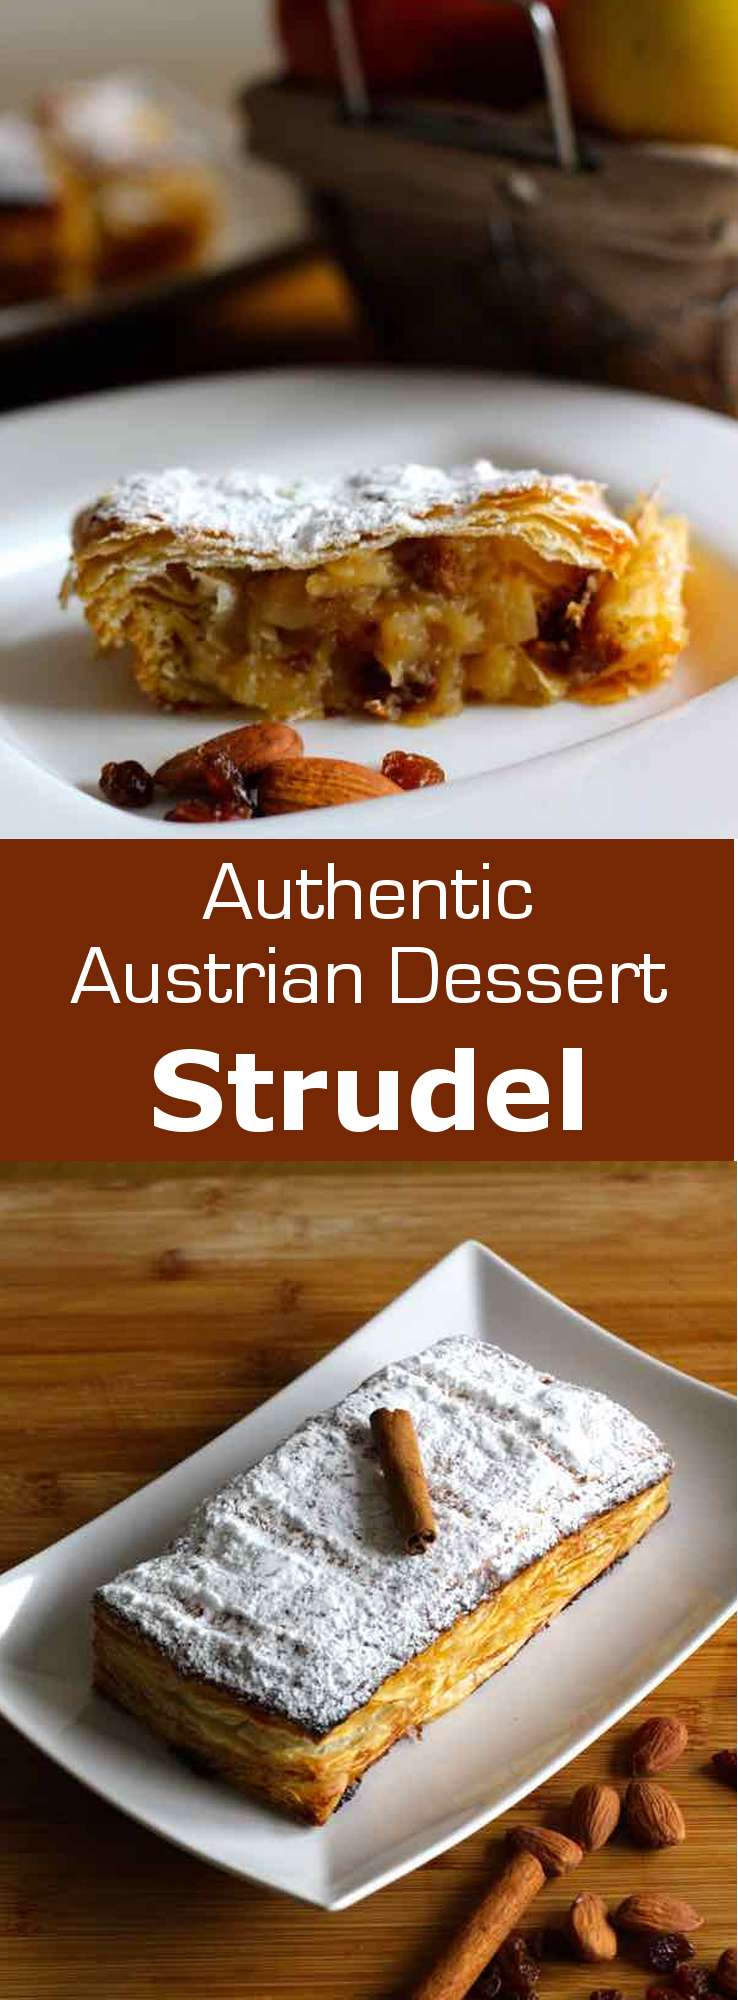 Apfelstrudel authentic austrian recipe 196 flavors apfelstrudel is a traditional viennese pastry prepared with a thin dough that is filled with cooking forumfinder Images